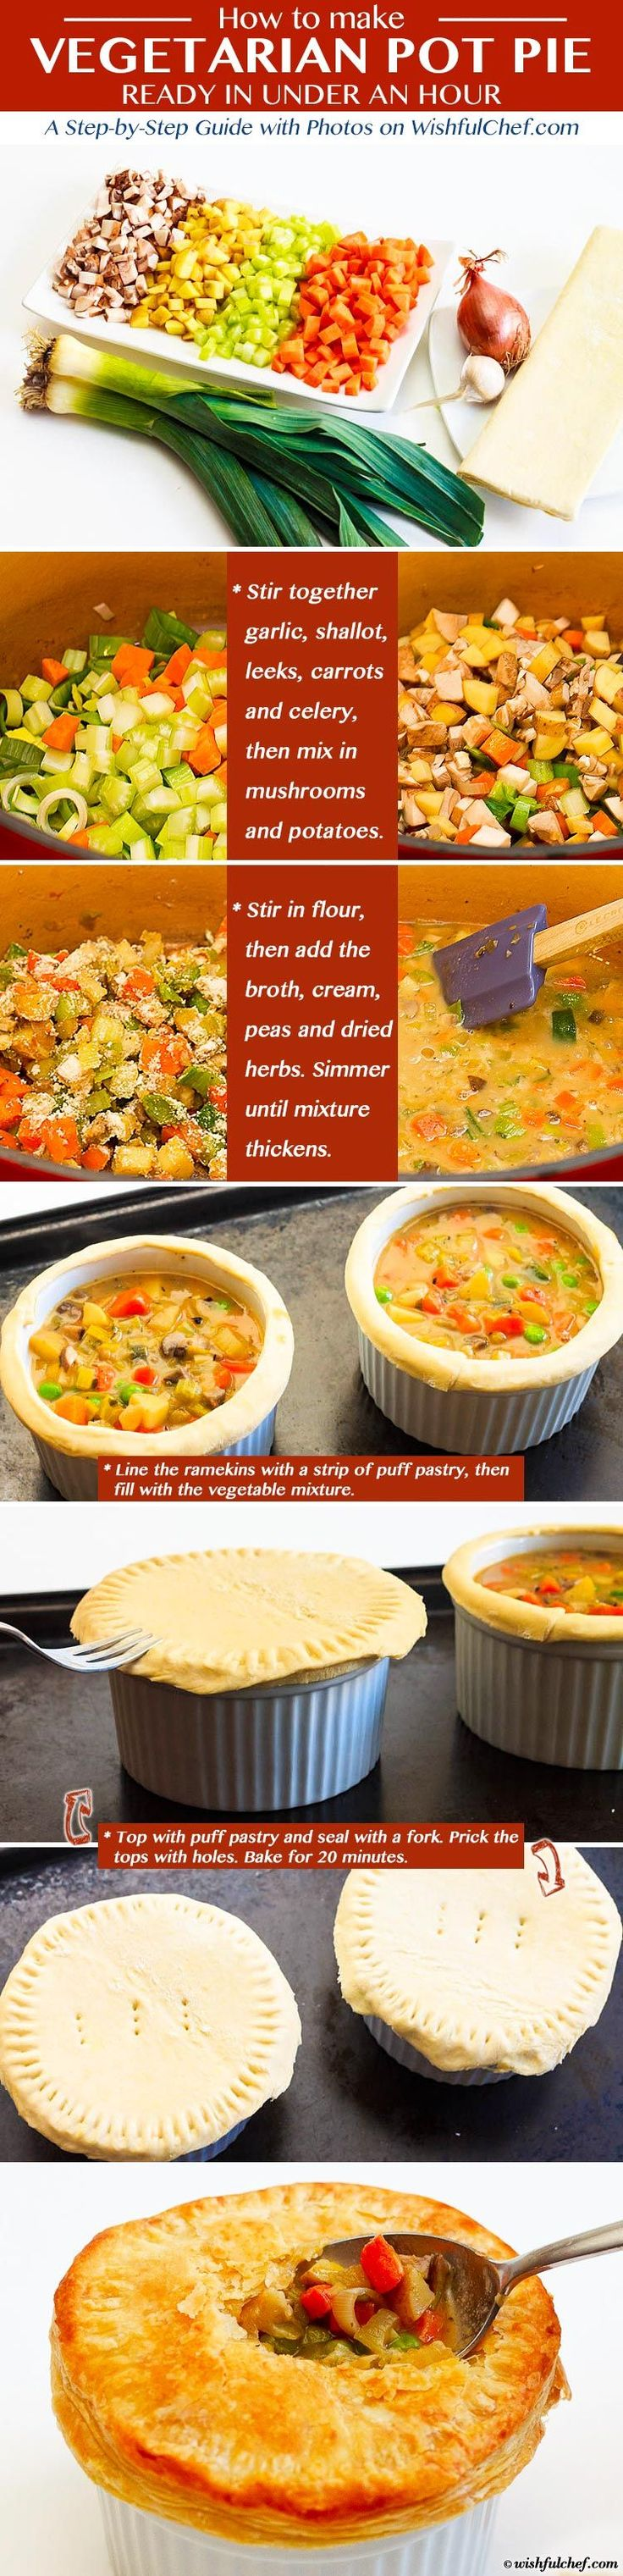 Vegetarian Pot Pie Recipe - Ready in Under an Hour // wishfulchef.com #Healthy #Vegetarian,